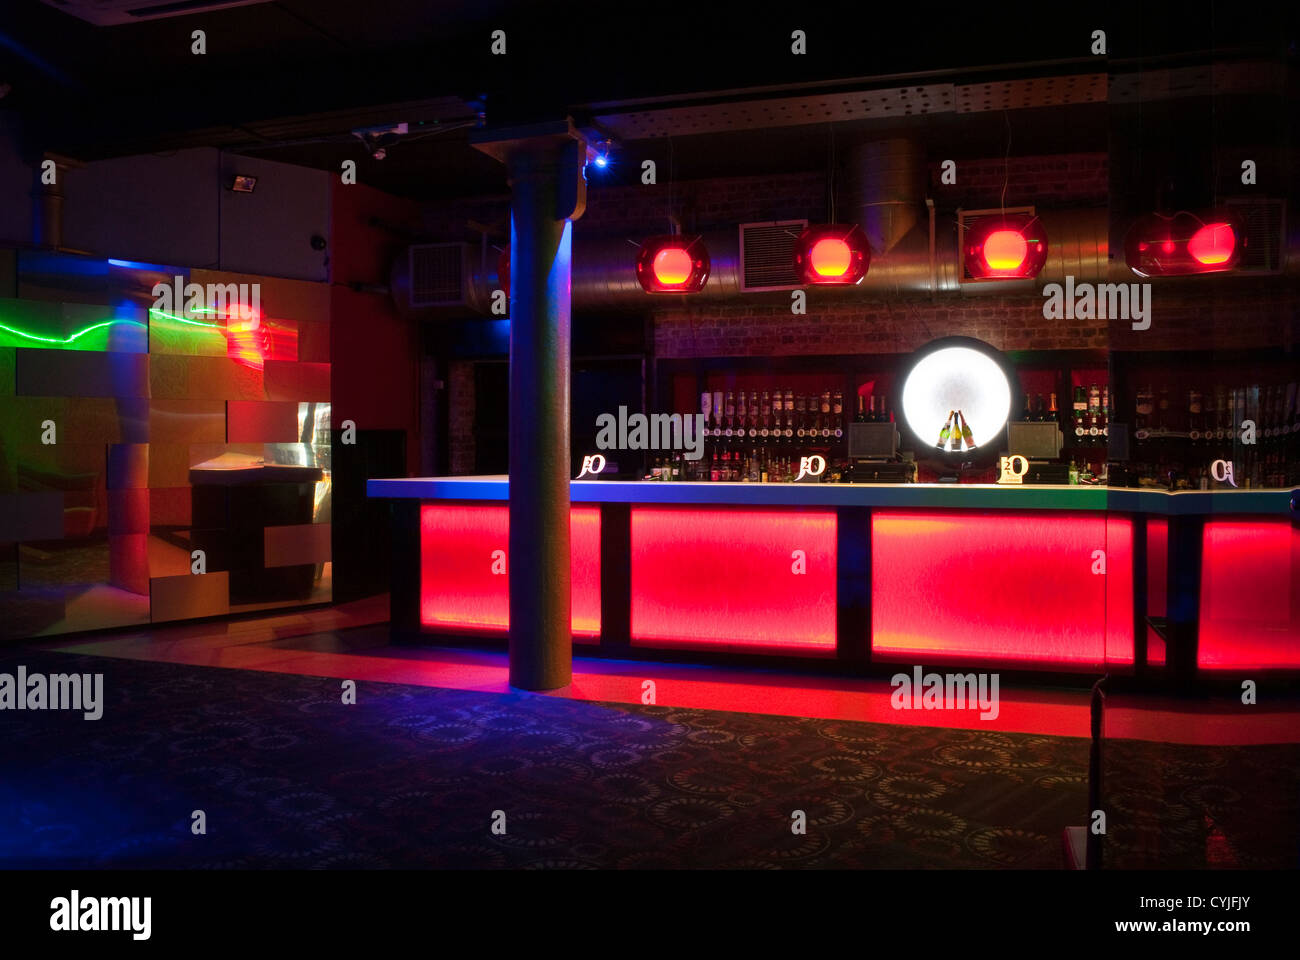 Night Club Bar Area, Interior Design   Stock Image